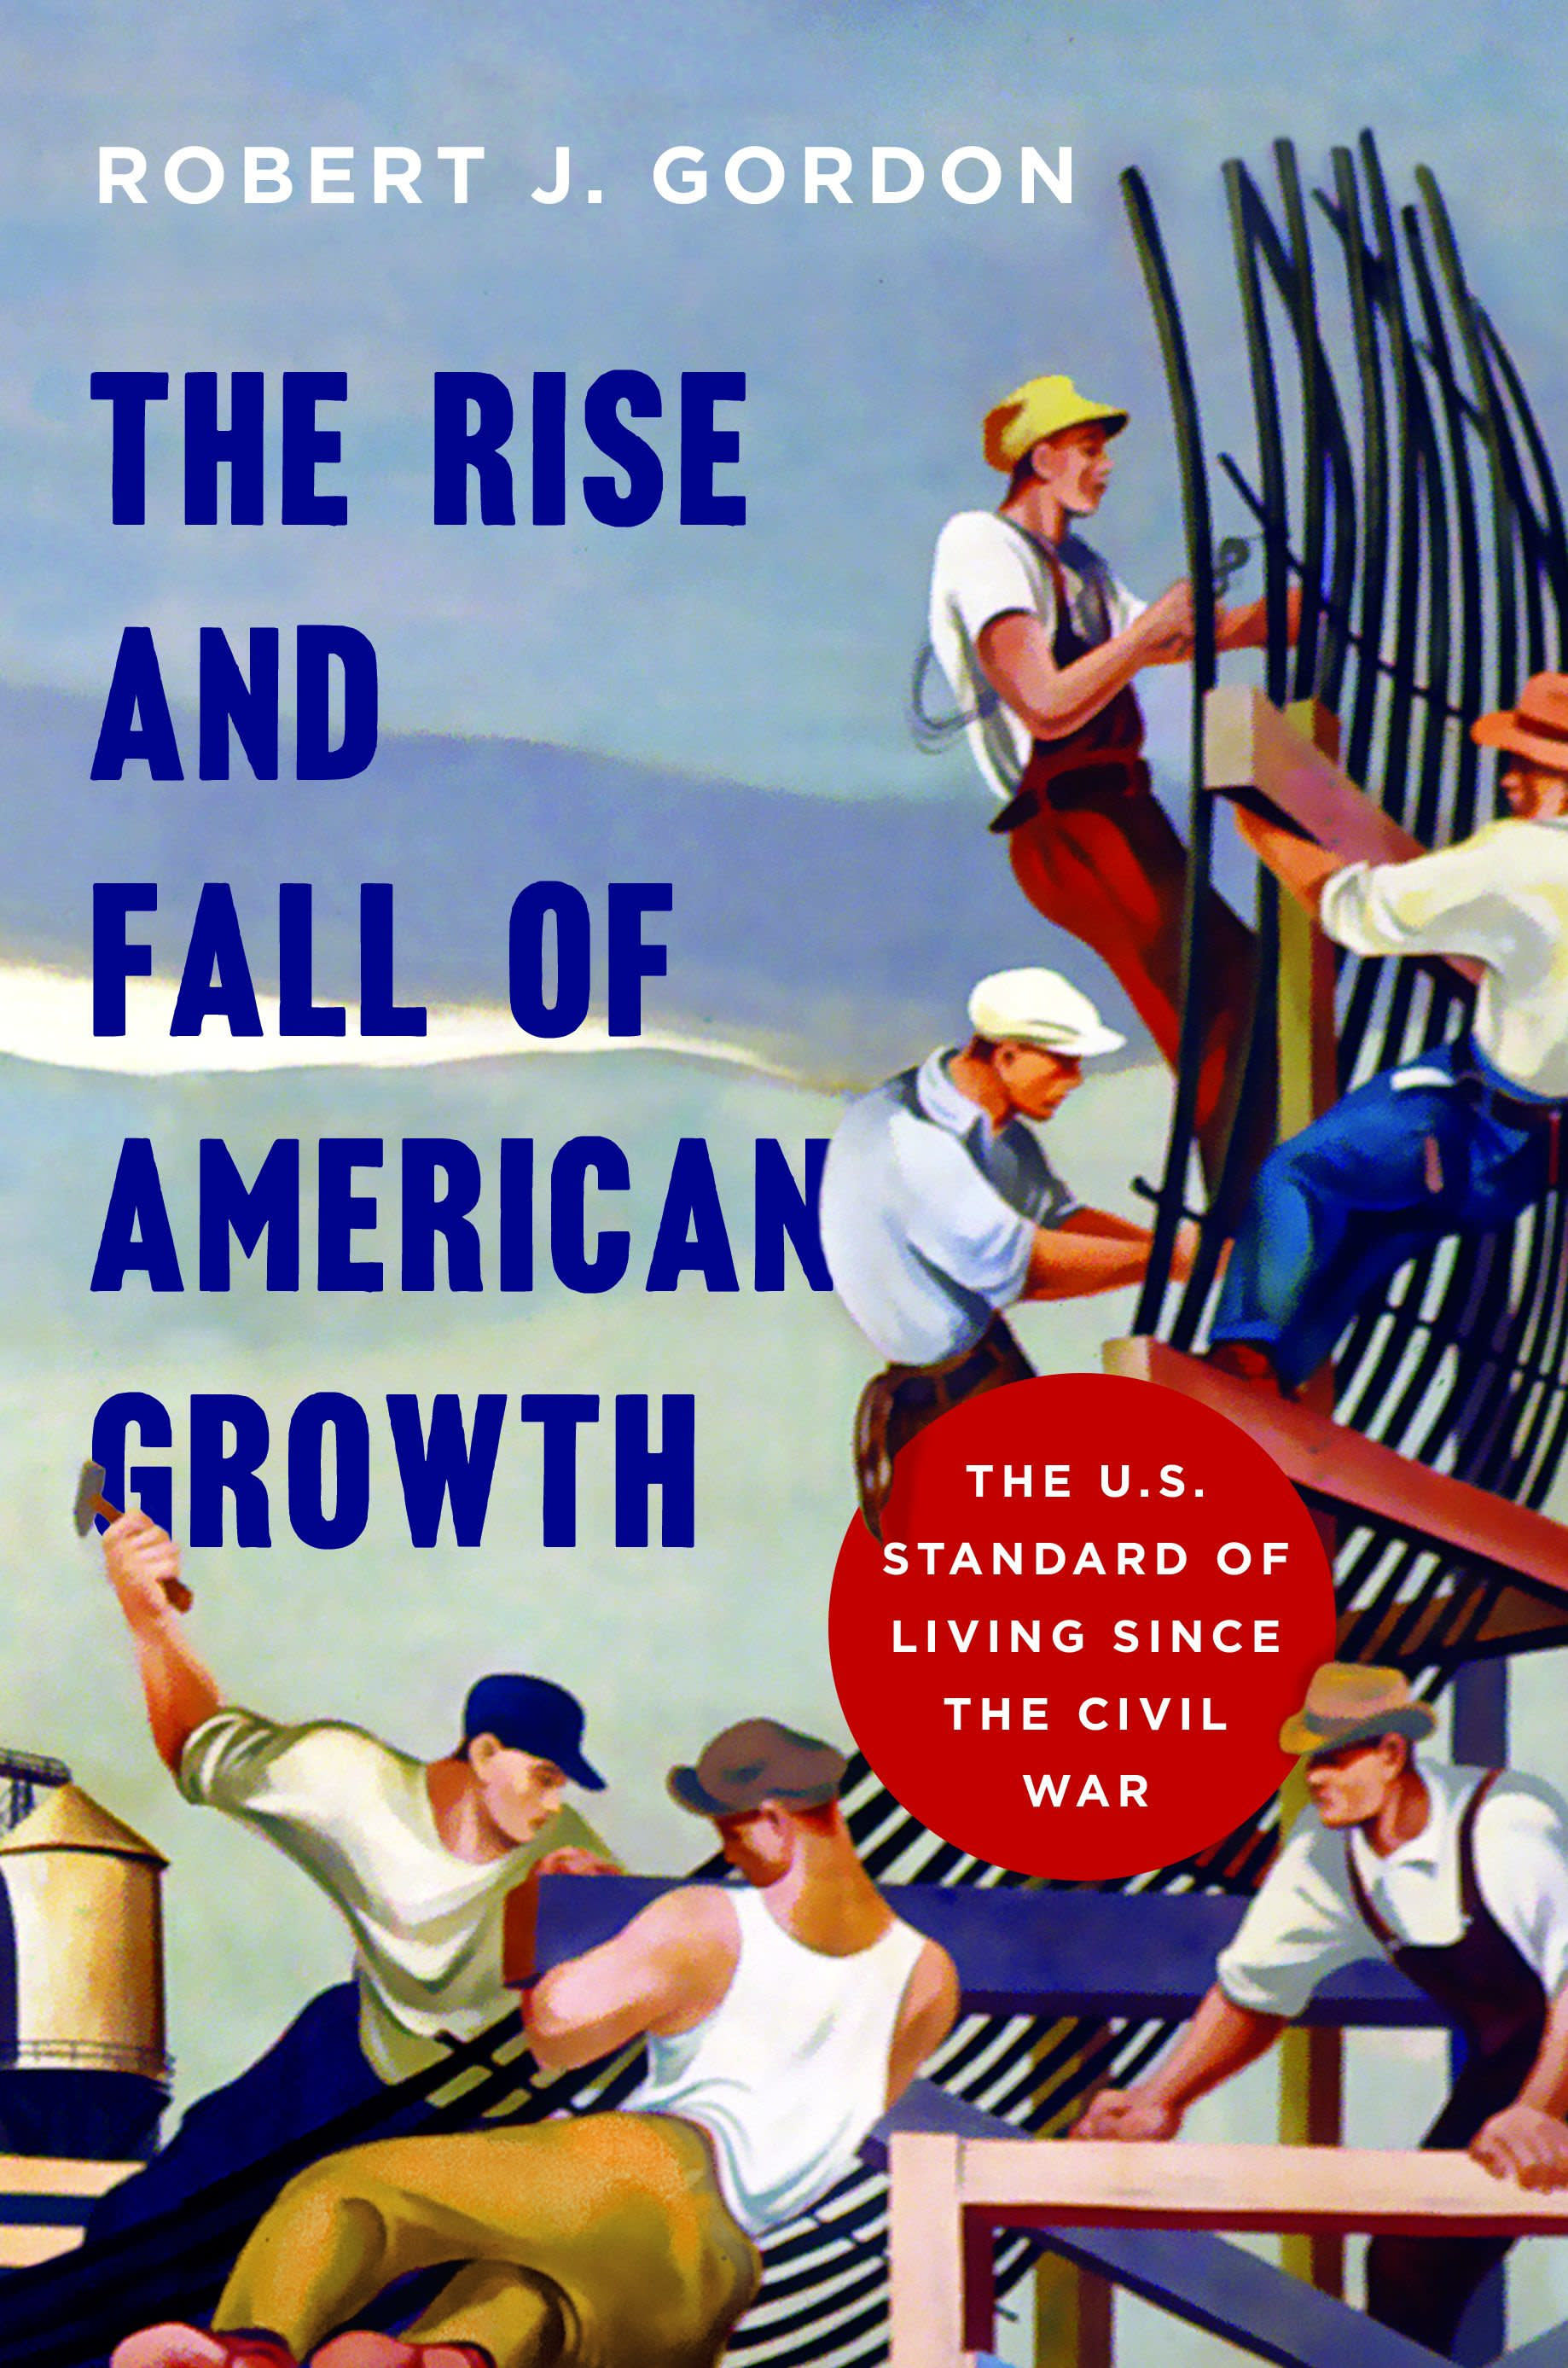 The Rise and Fall of American Growth by Robert Gordon